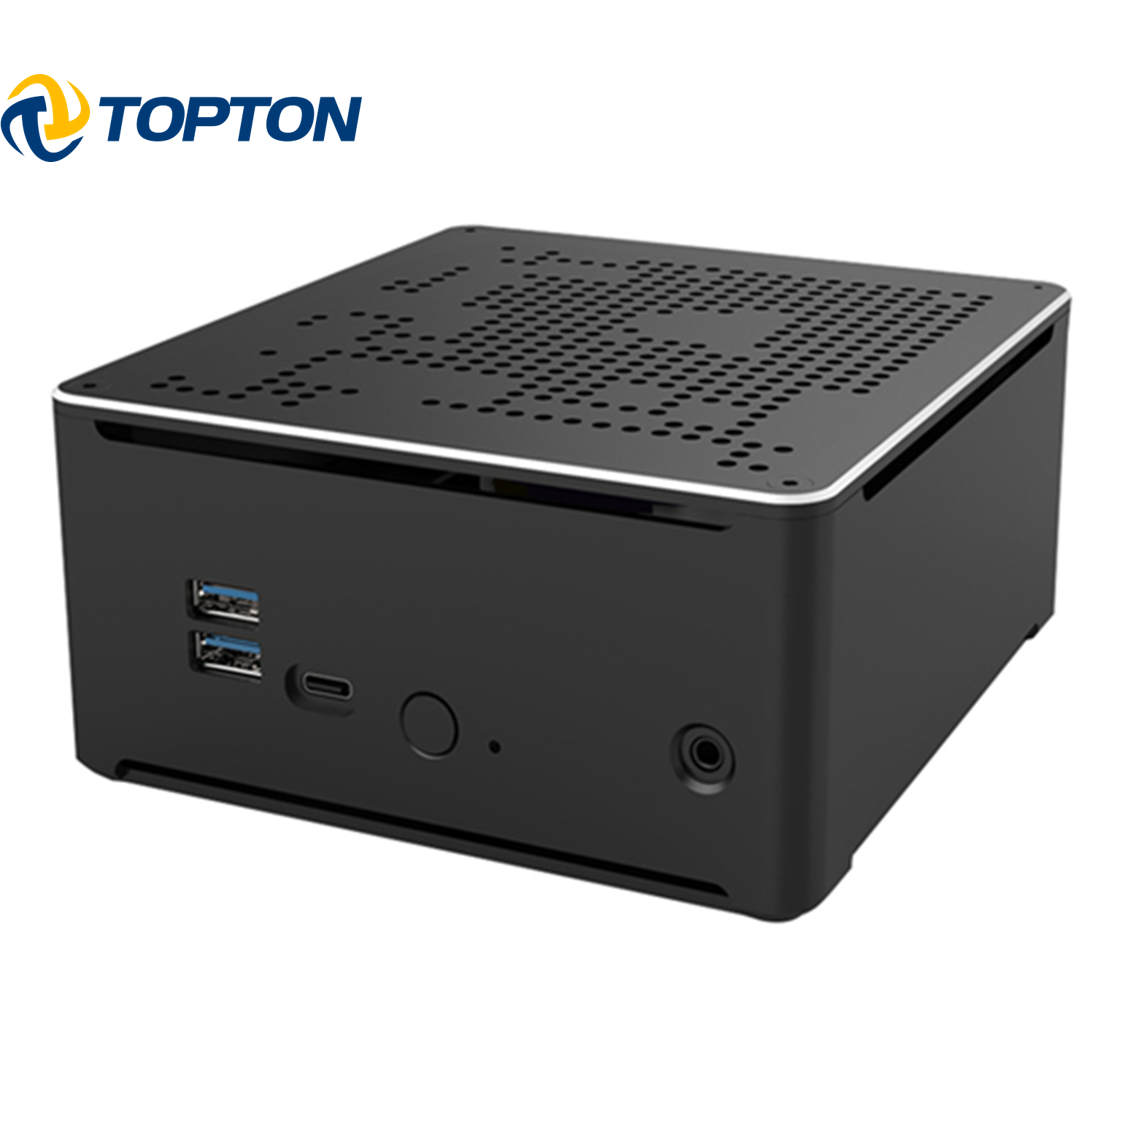 S210H Mini PC Gaming Core I9 9880H/8950HK 2 * DDR4 M.2 NVME Kantor Desktop Komputer <span class=keywords><strong>Laptop</strong></span> Win10 HD DP WiFi 4K HTPC